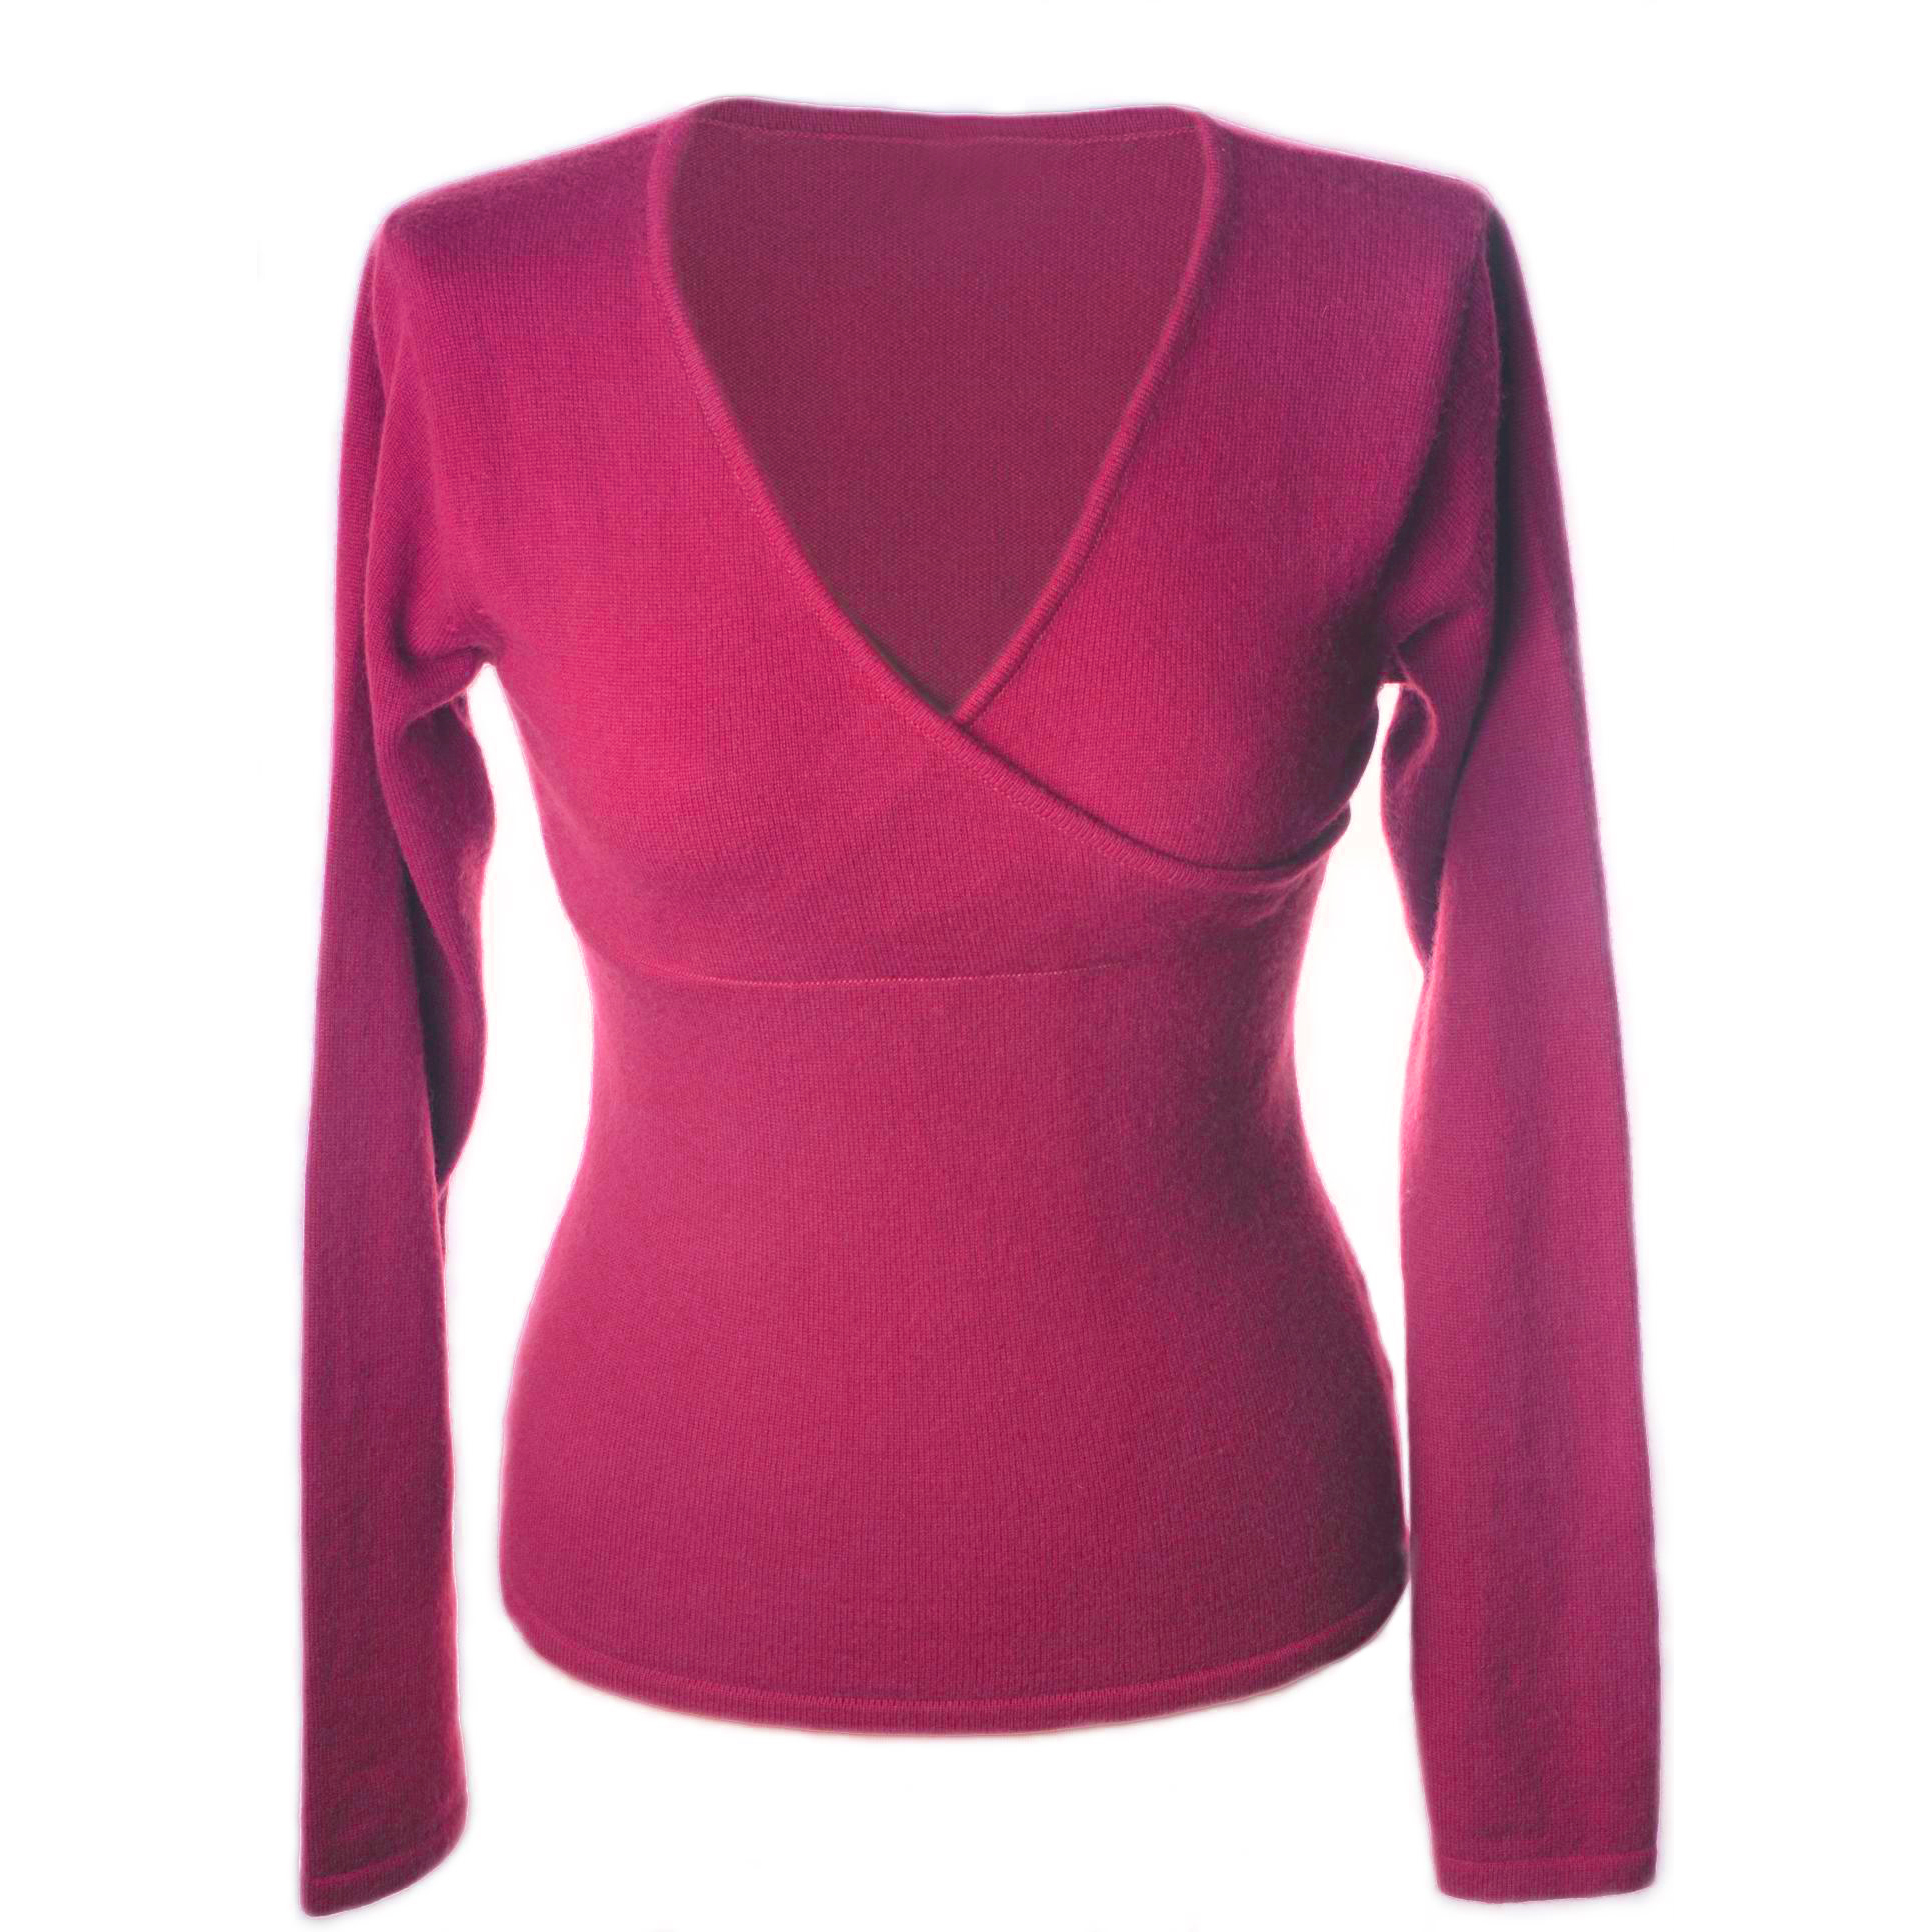 XXL - Ladies - Long Sleeve Crossover Top - Deep Orchid